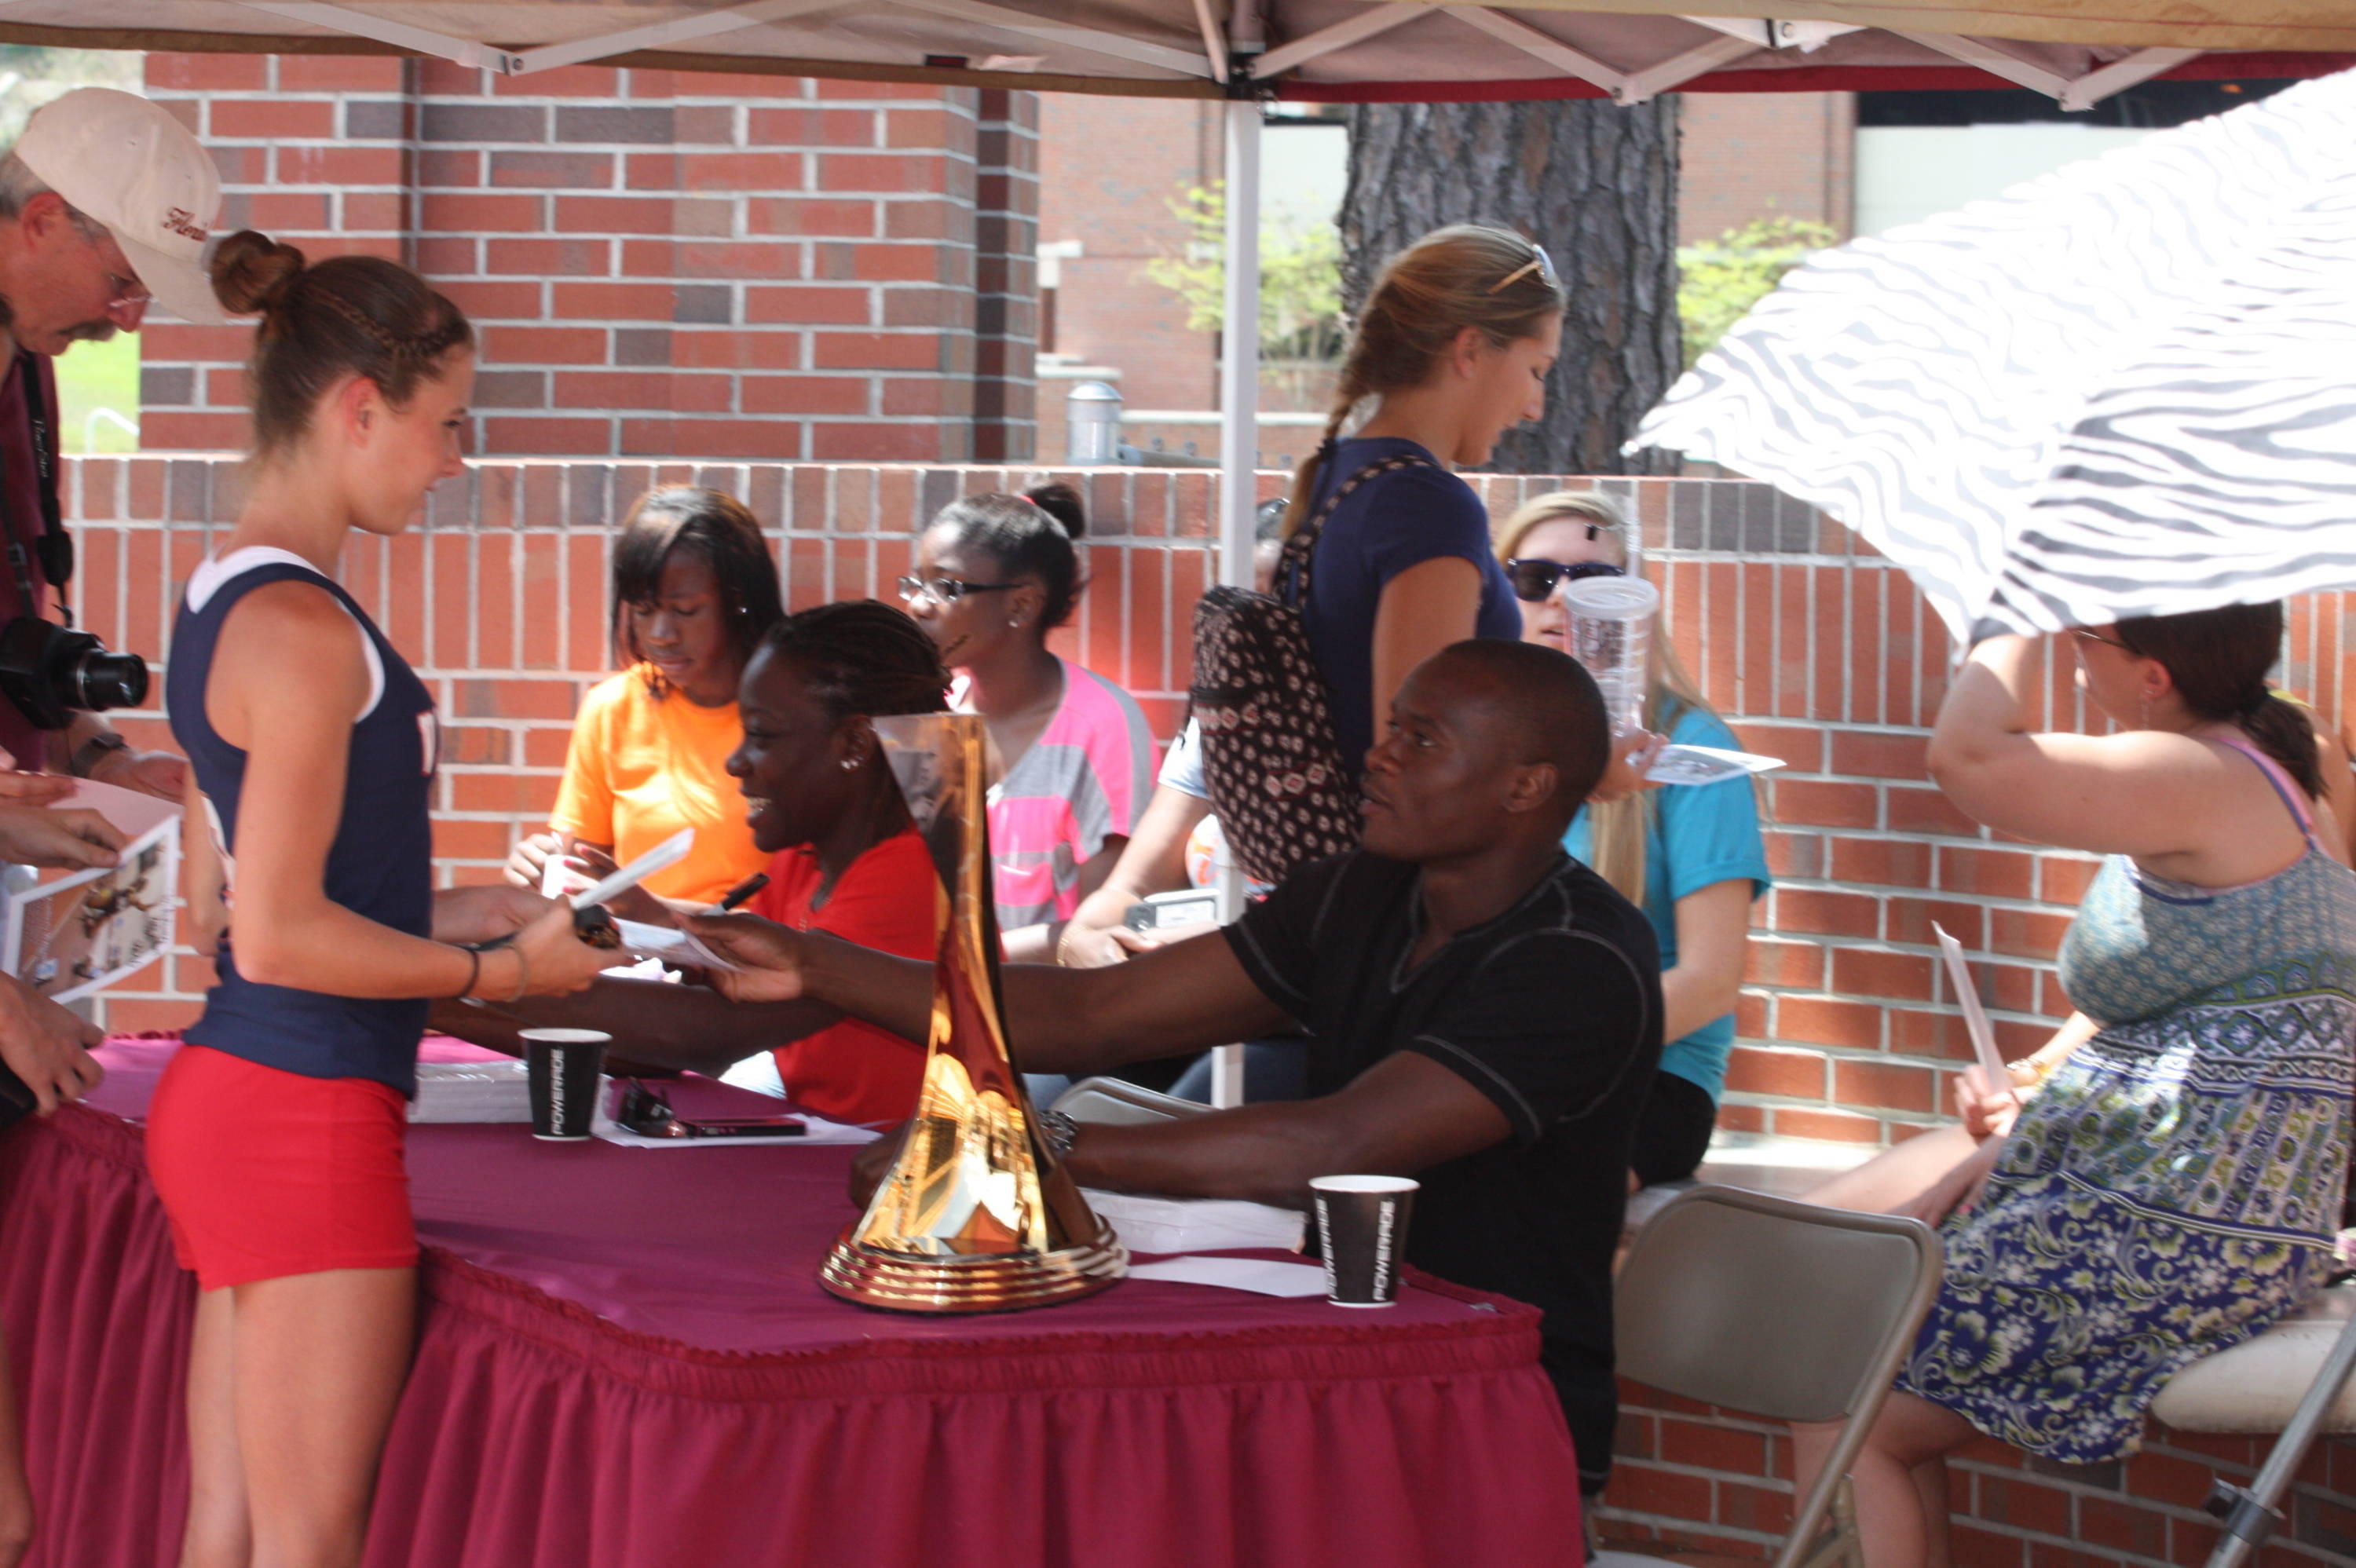 Kimberly Williams and Ngoni Makusha signed tons of autographs for young fans at TrackFest during the 2012 FSU Relays.